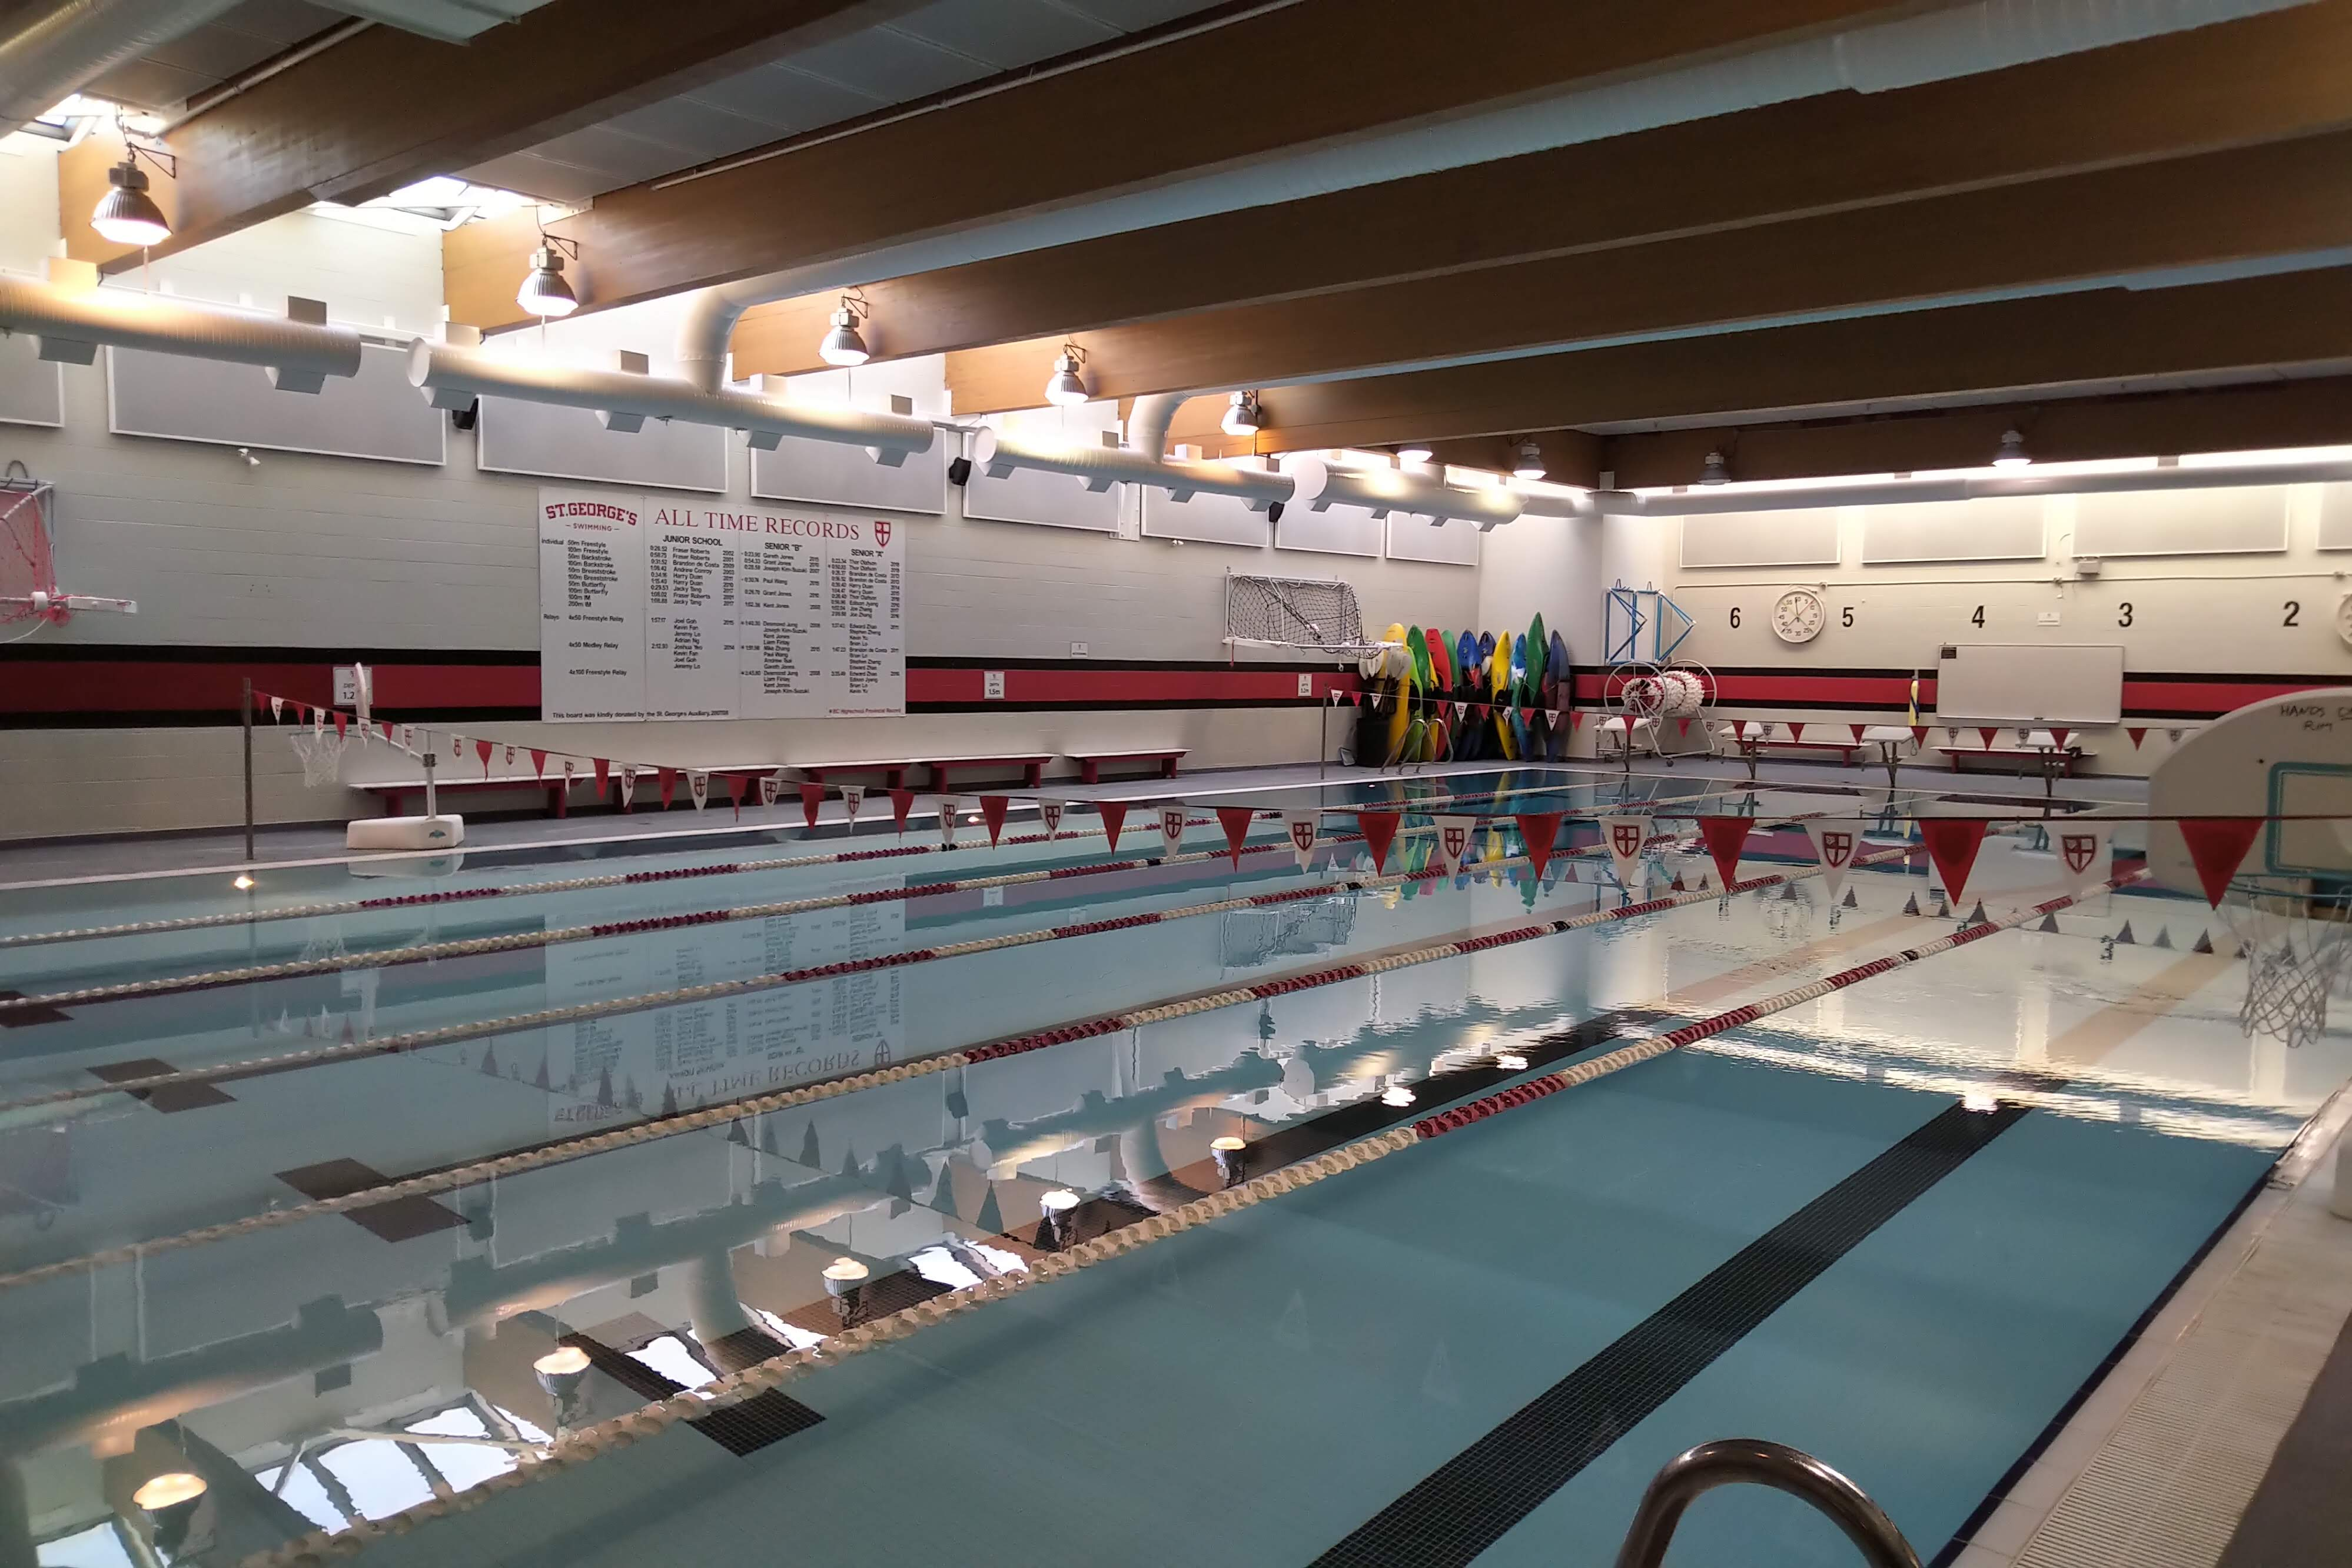 0414 - St George's School Pool - Vancouver